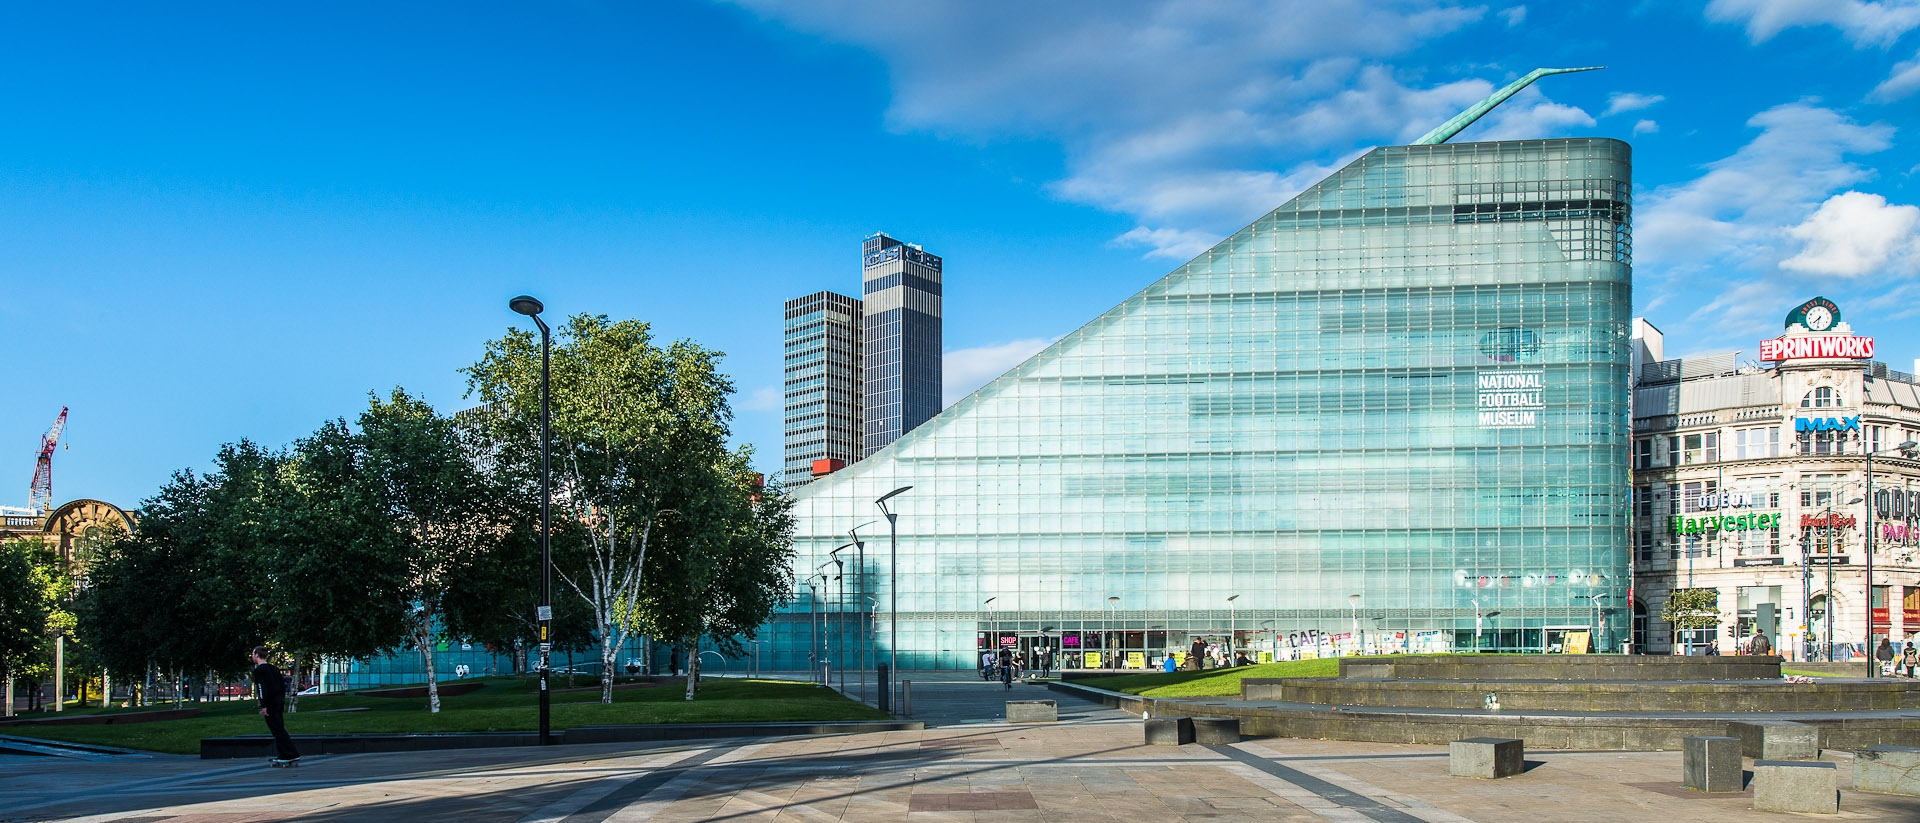 Urbis national football museum printworks Manchester